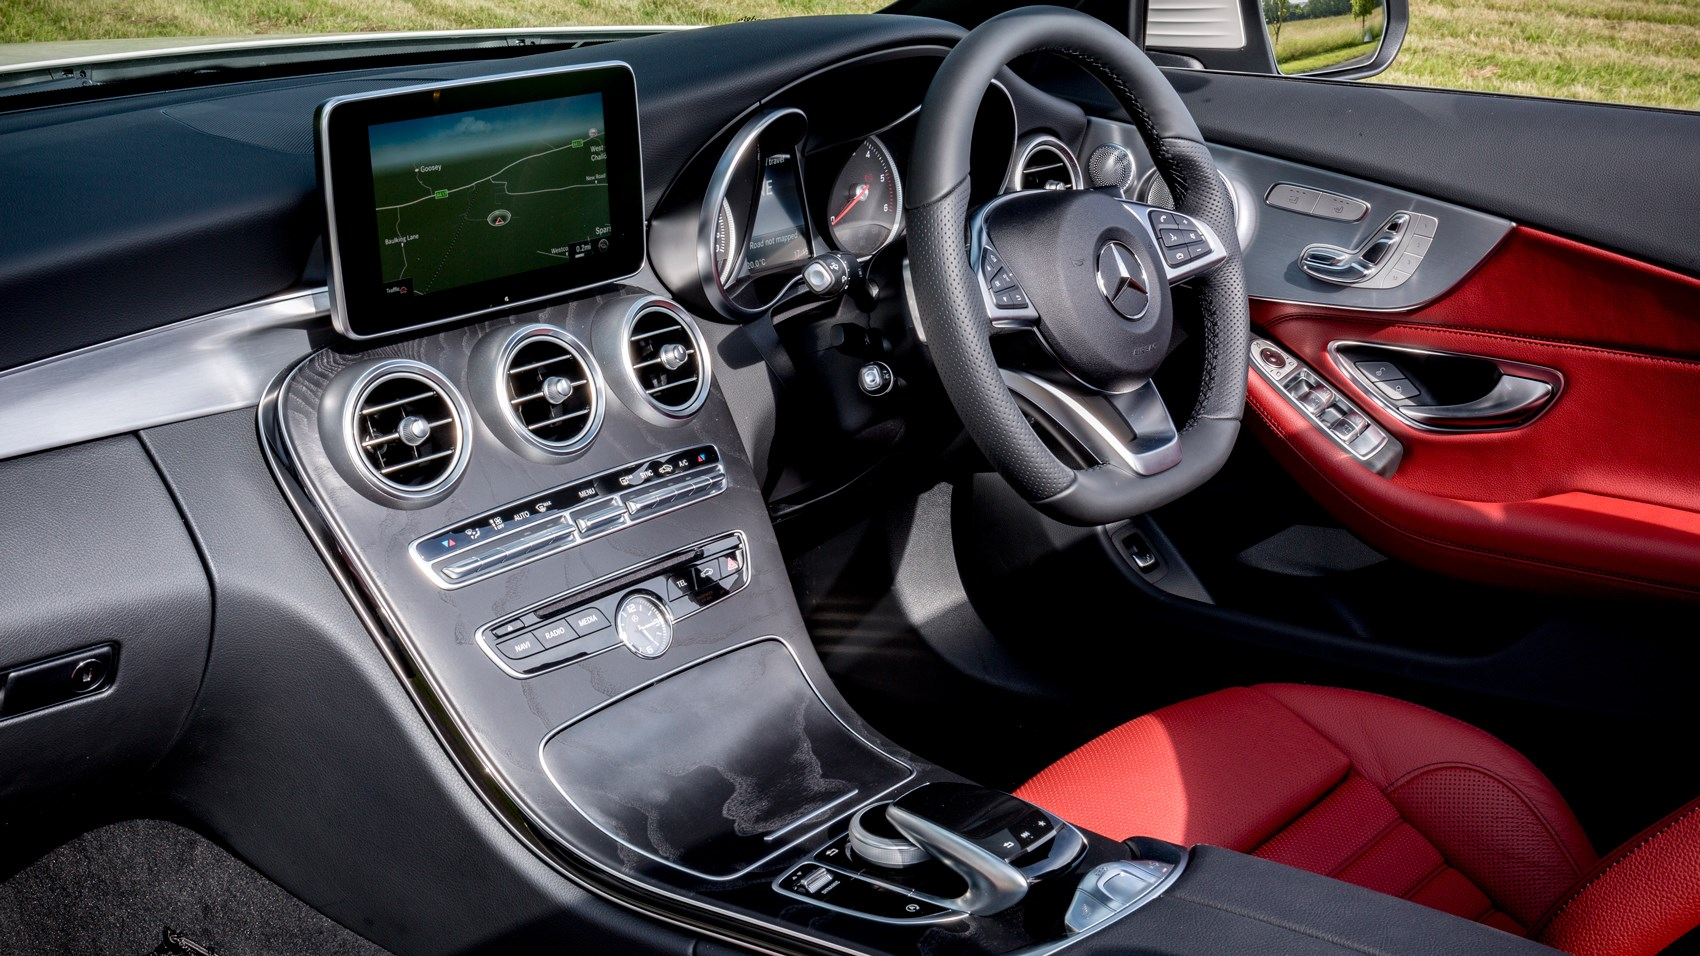 Mercedes c220d cabriolet 2017 review car magazine for Mercedes benz c300 red interior